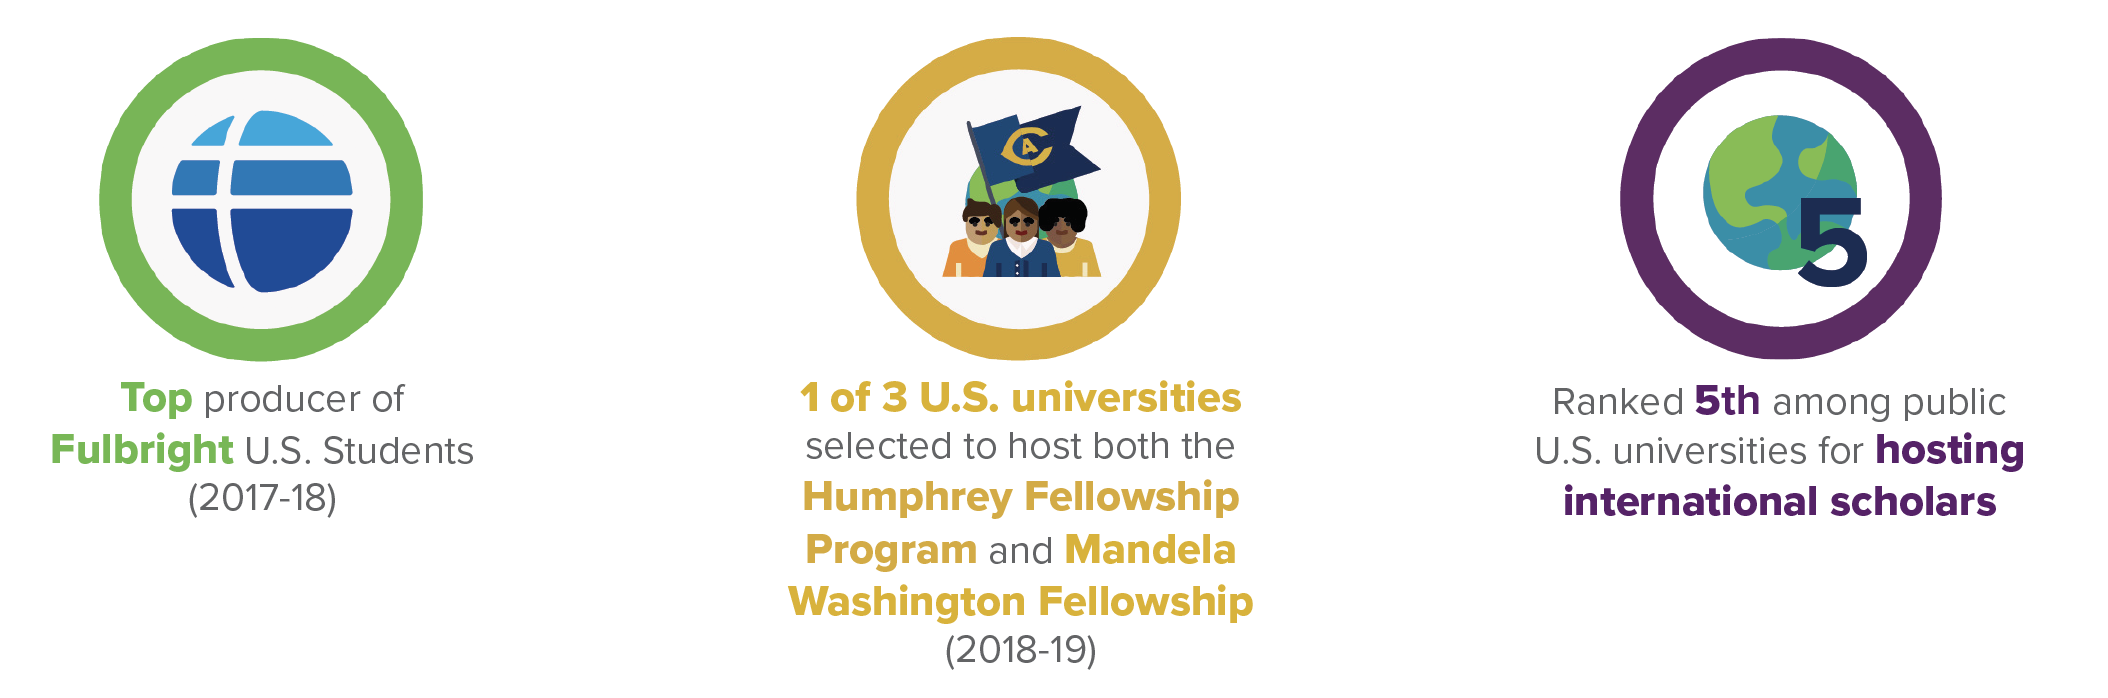 graphic: top producer of U.S. Fulbright Students, one of three universities to host both the Humphrey Fellowship Program and Mandela Washington Fellowship, 5th among U.S. public universities in hosting International scholars